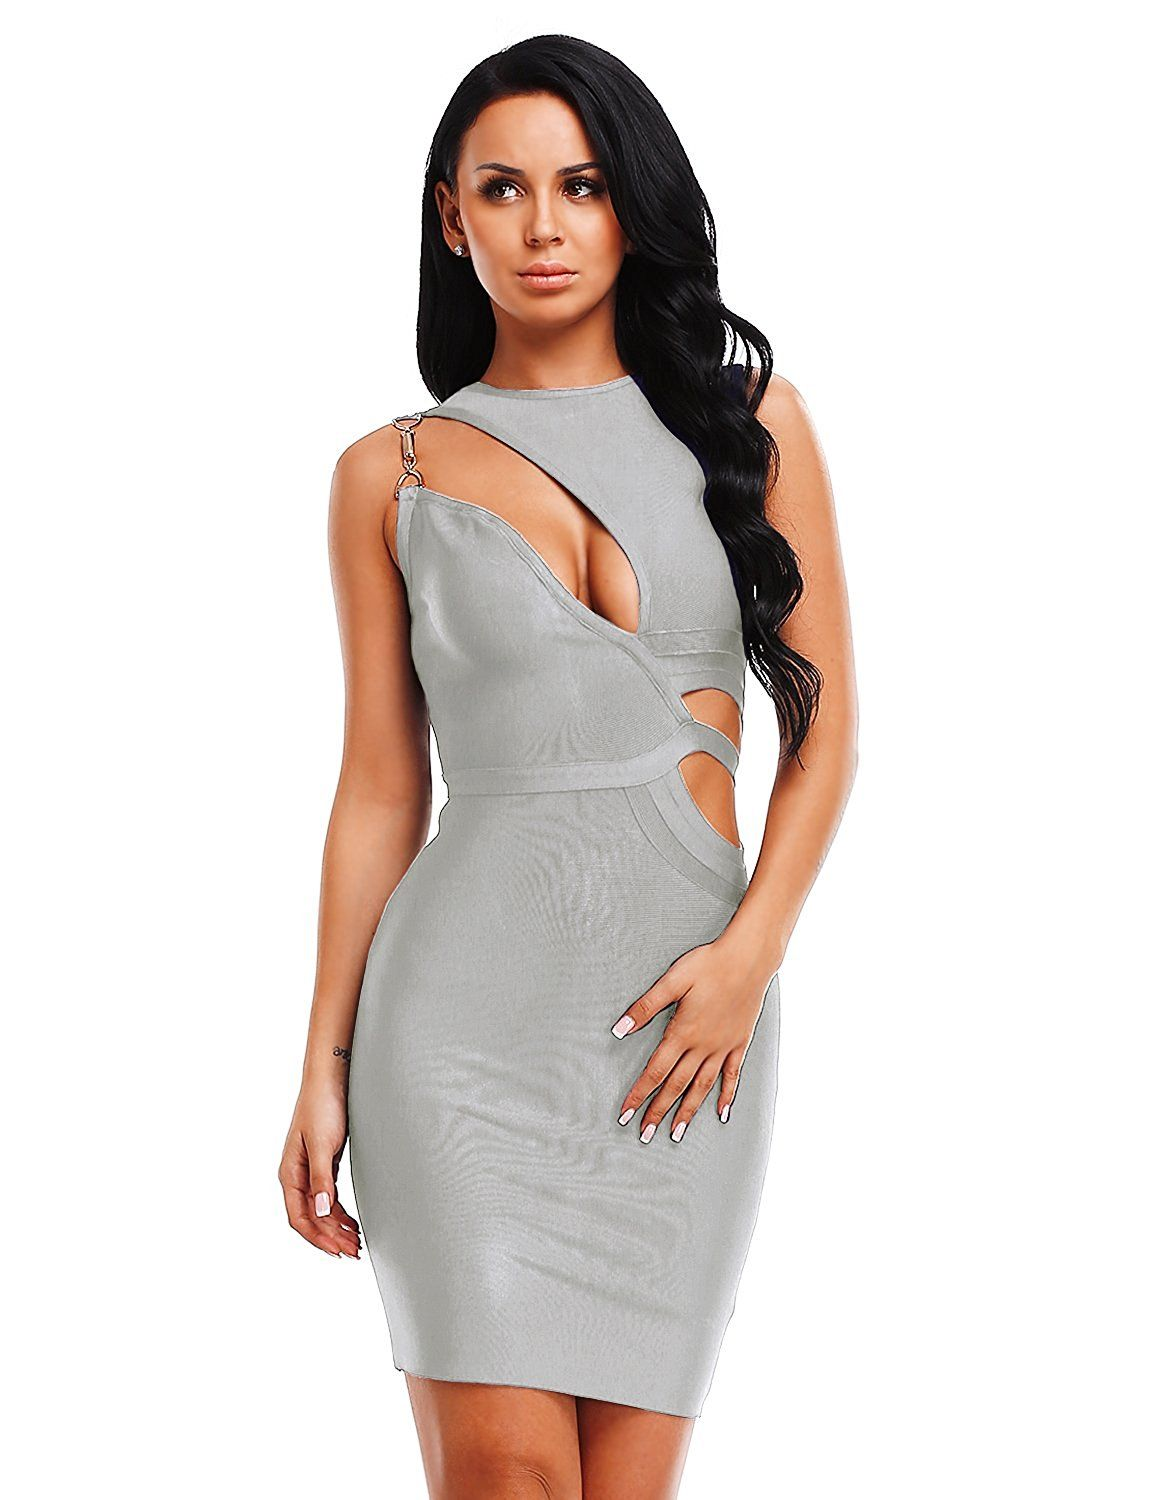 be82123d958 Amazon.com: Hego Women's Grey Cut Out Club Party Bandage Bodycon Dress  H4109: Clothing